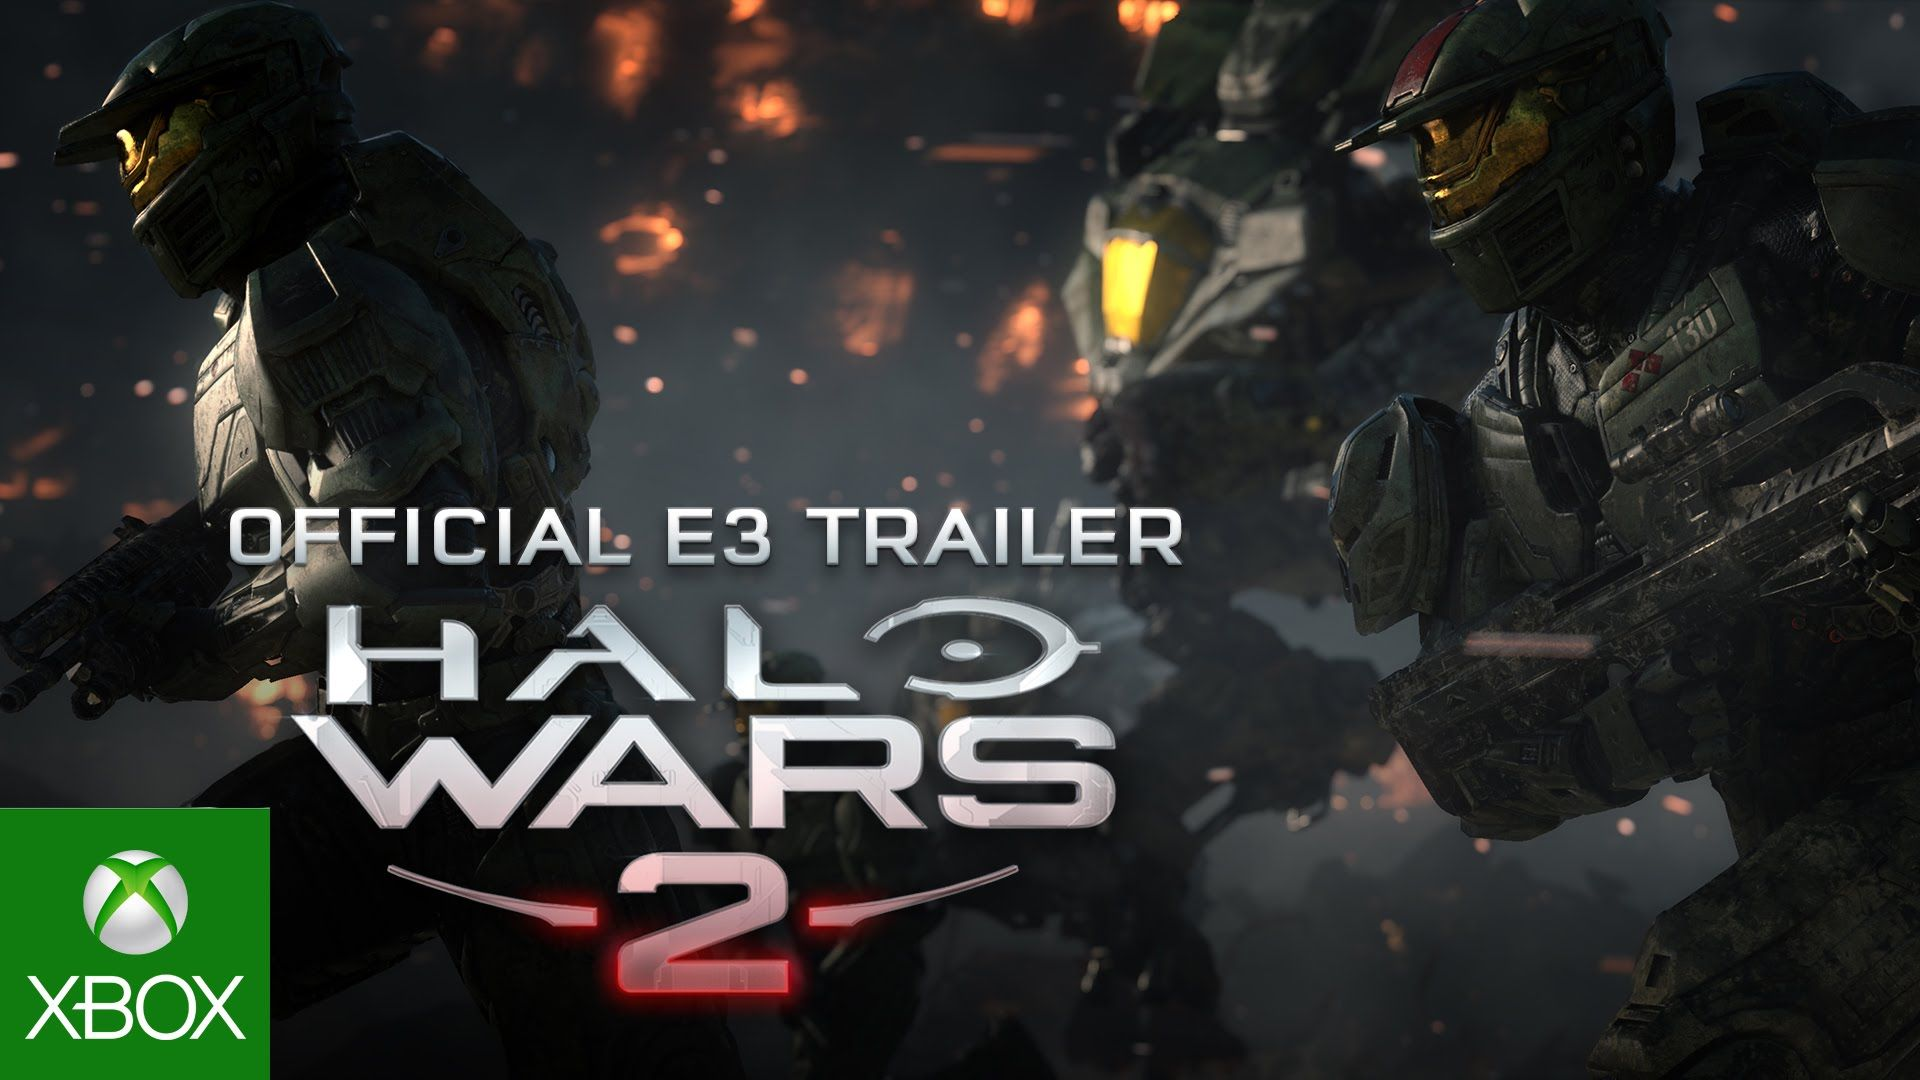 halo wars 2 official e3 trailer in halo wars 2 the